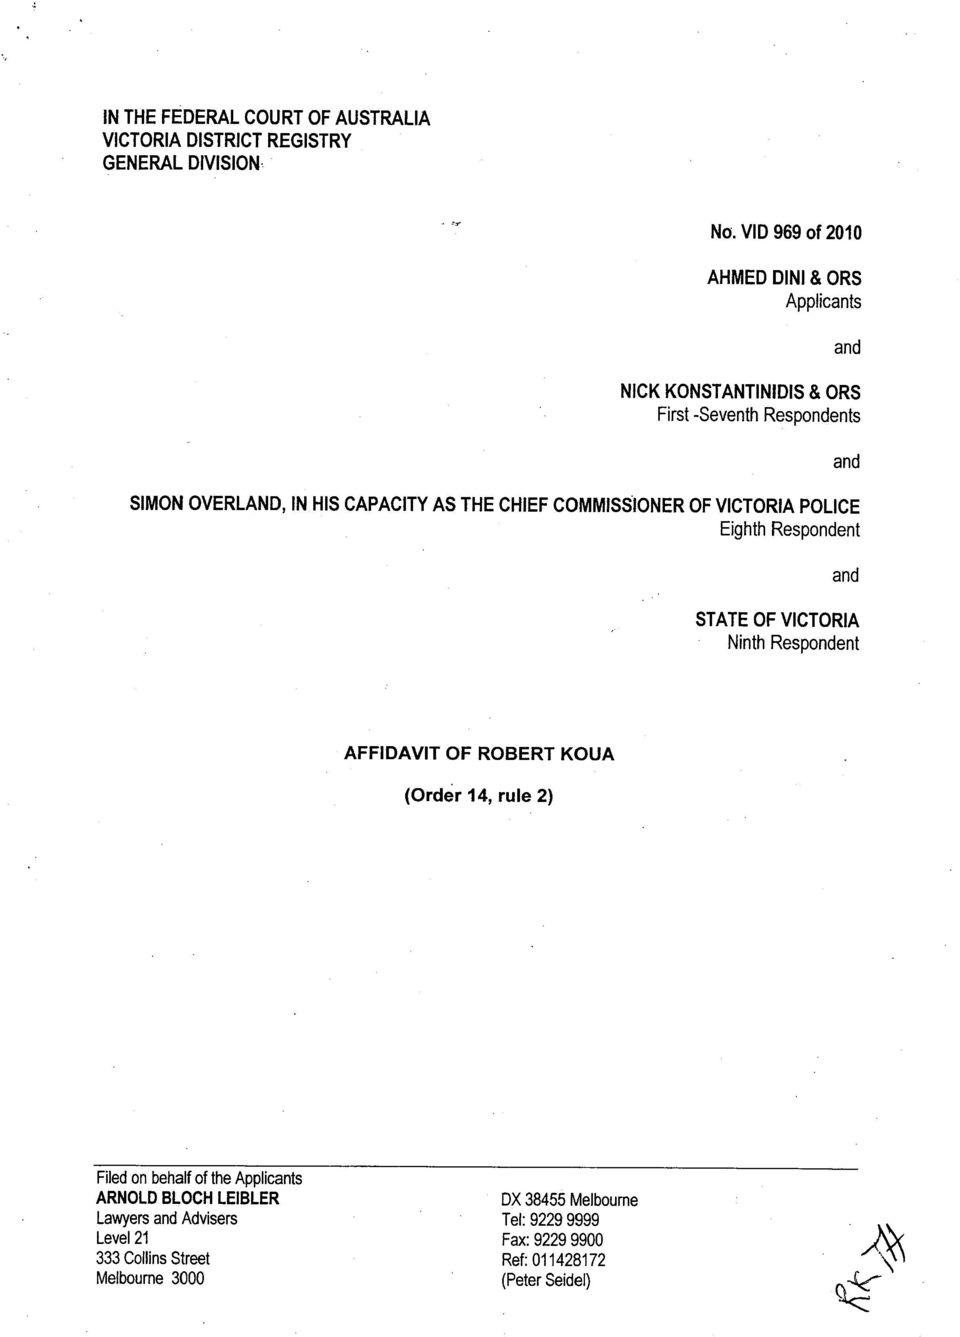 CHIEF COMMISSIONER OF VICTORIA POLICE Eighth Respondent STATE OF VICTORIA Ninth Respondent AFFIDAVIT OF ROBERT KOUA (Order 14, rule 2)